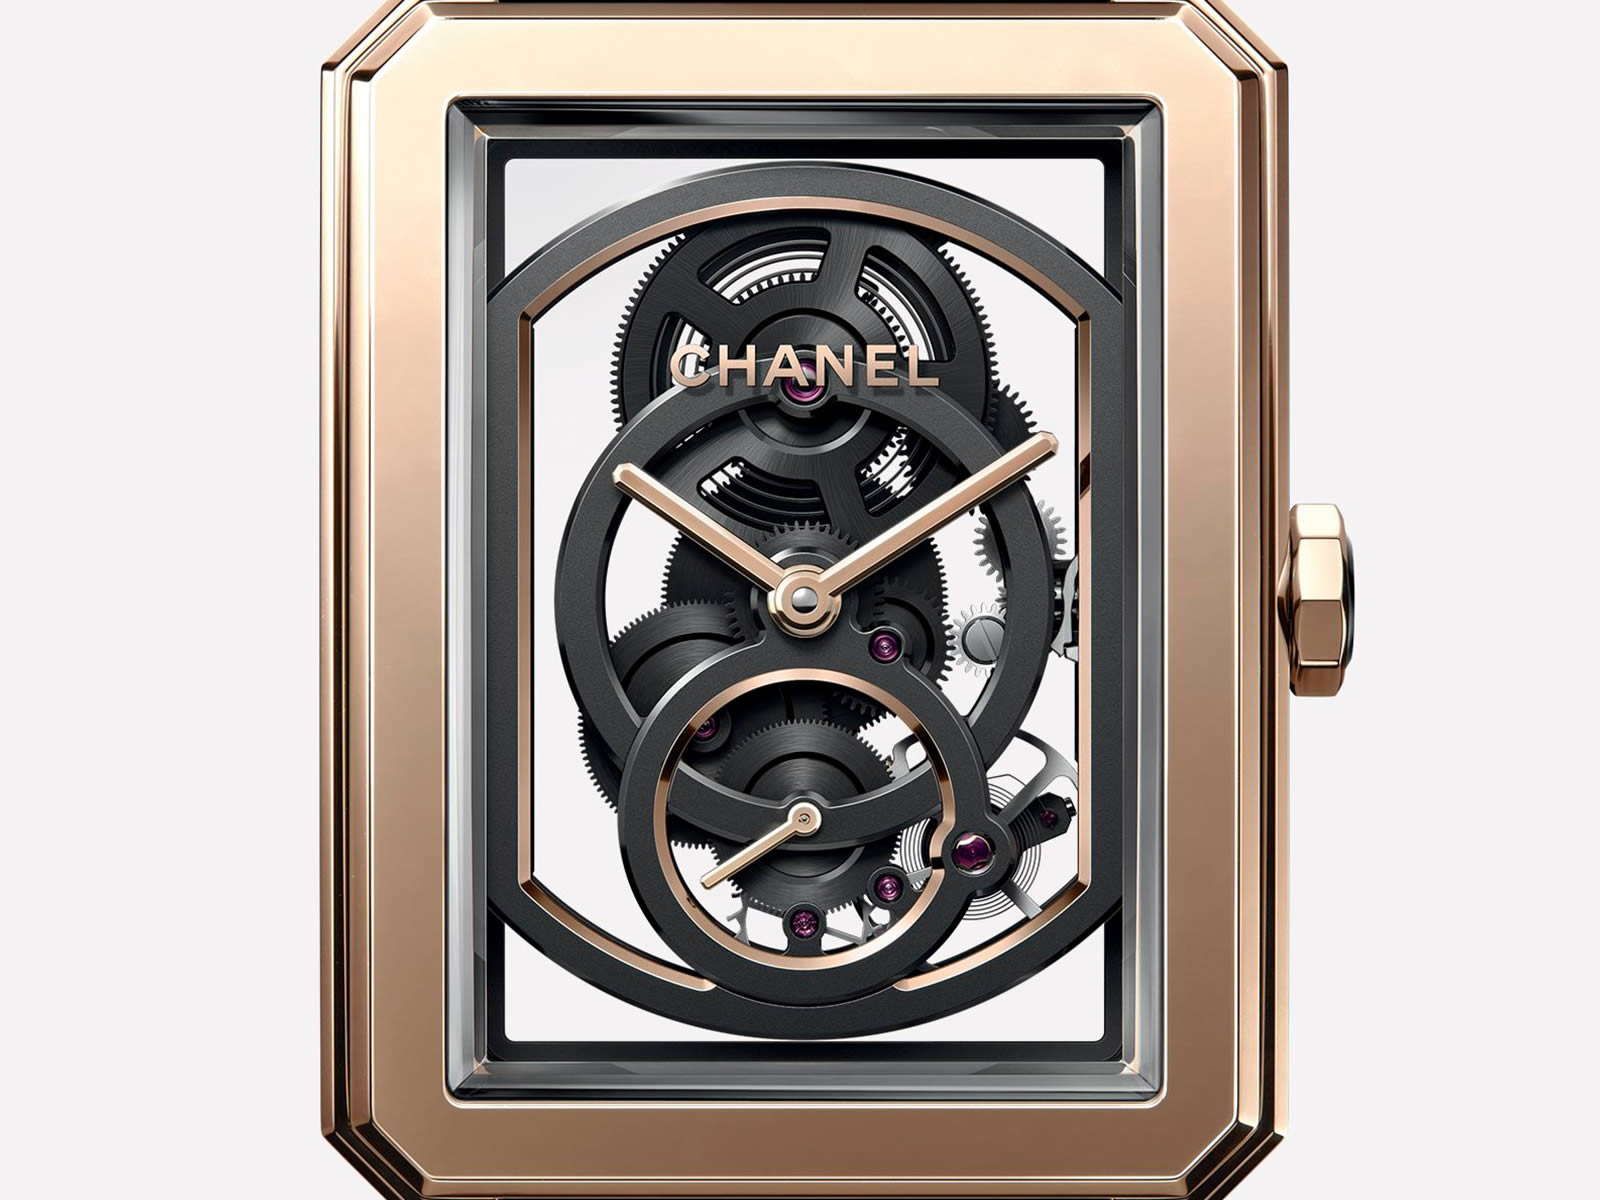 h5254-chanel-boy-friend-calibre-3-4-.jpg